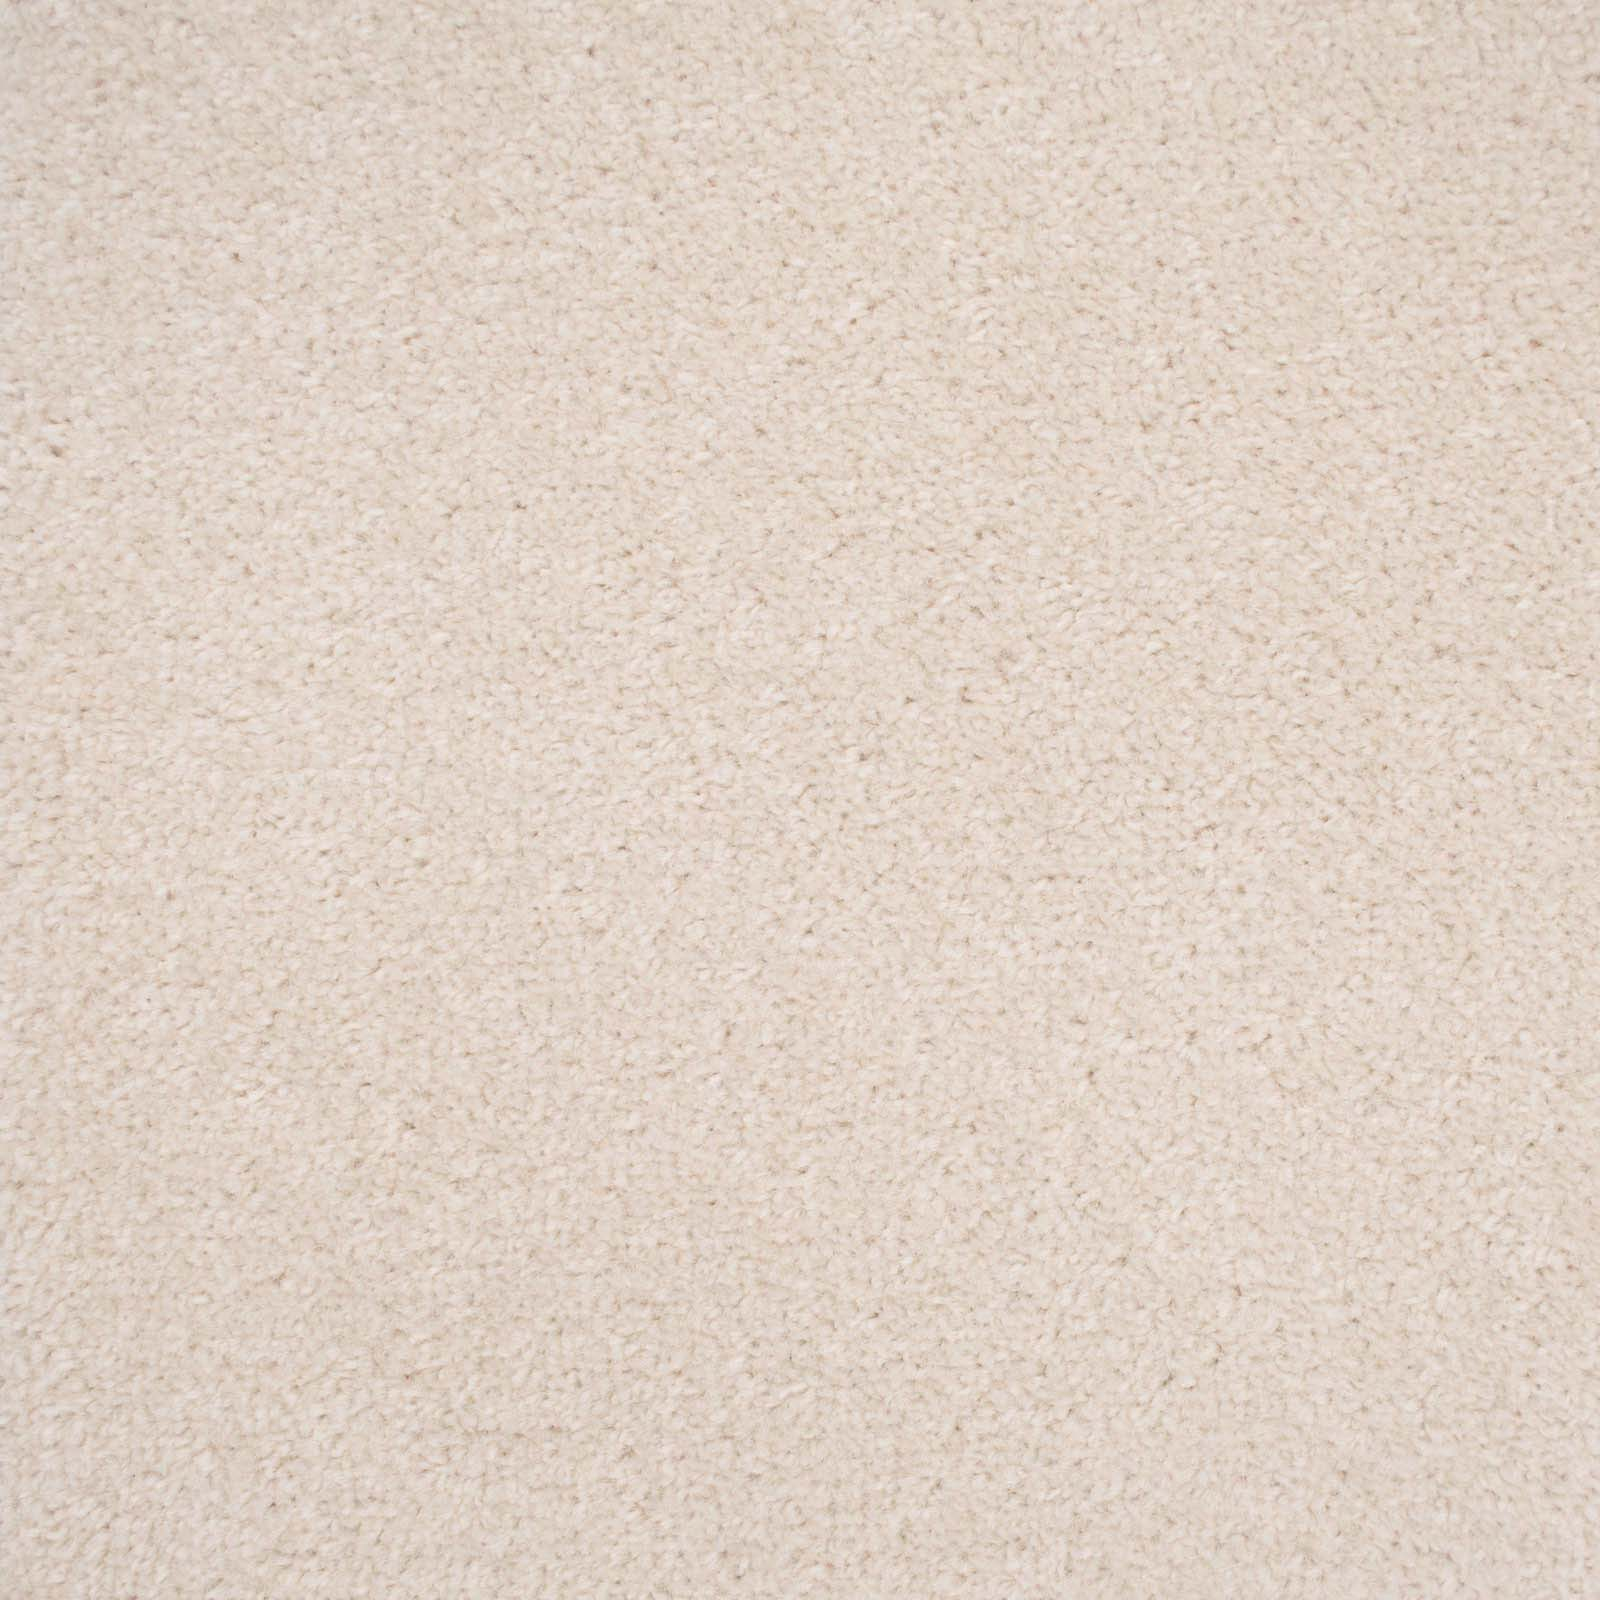 Cream Action Back Twist Carpet - Far